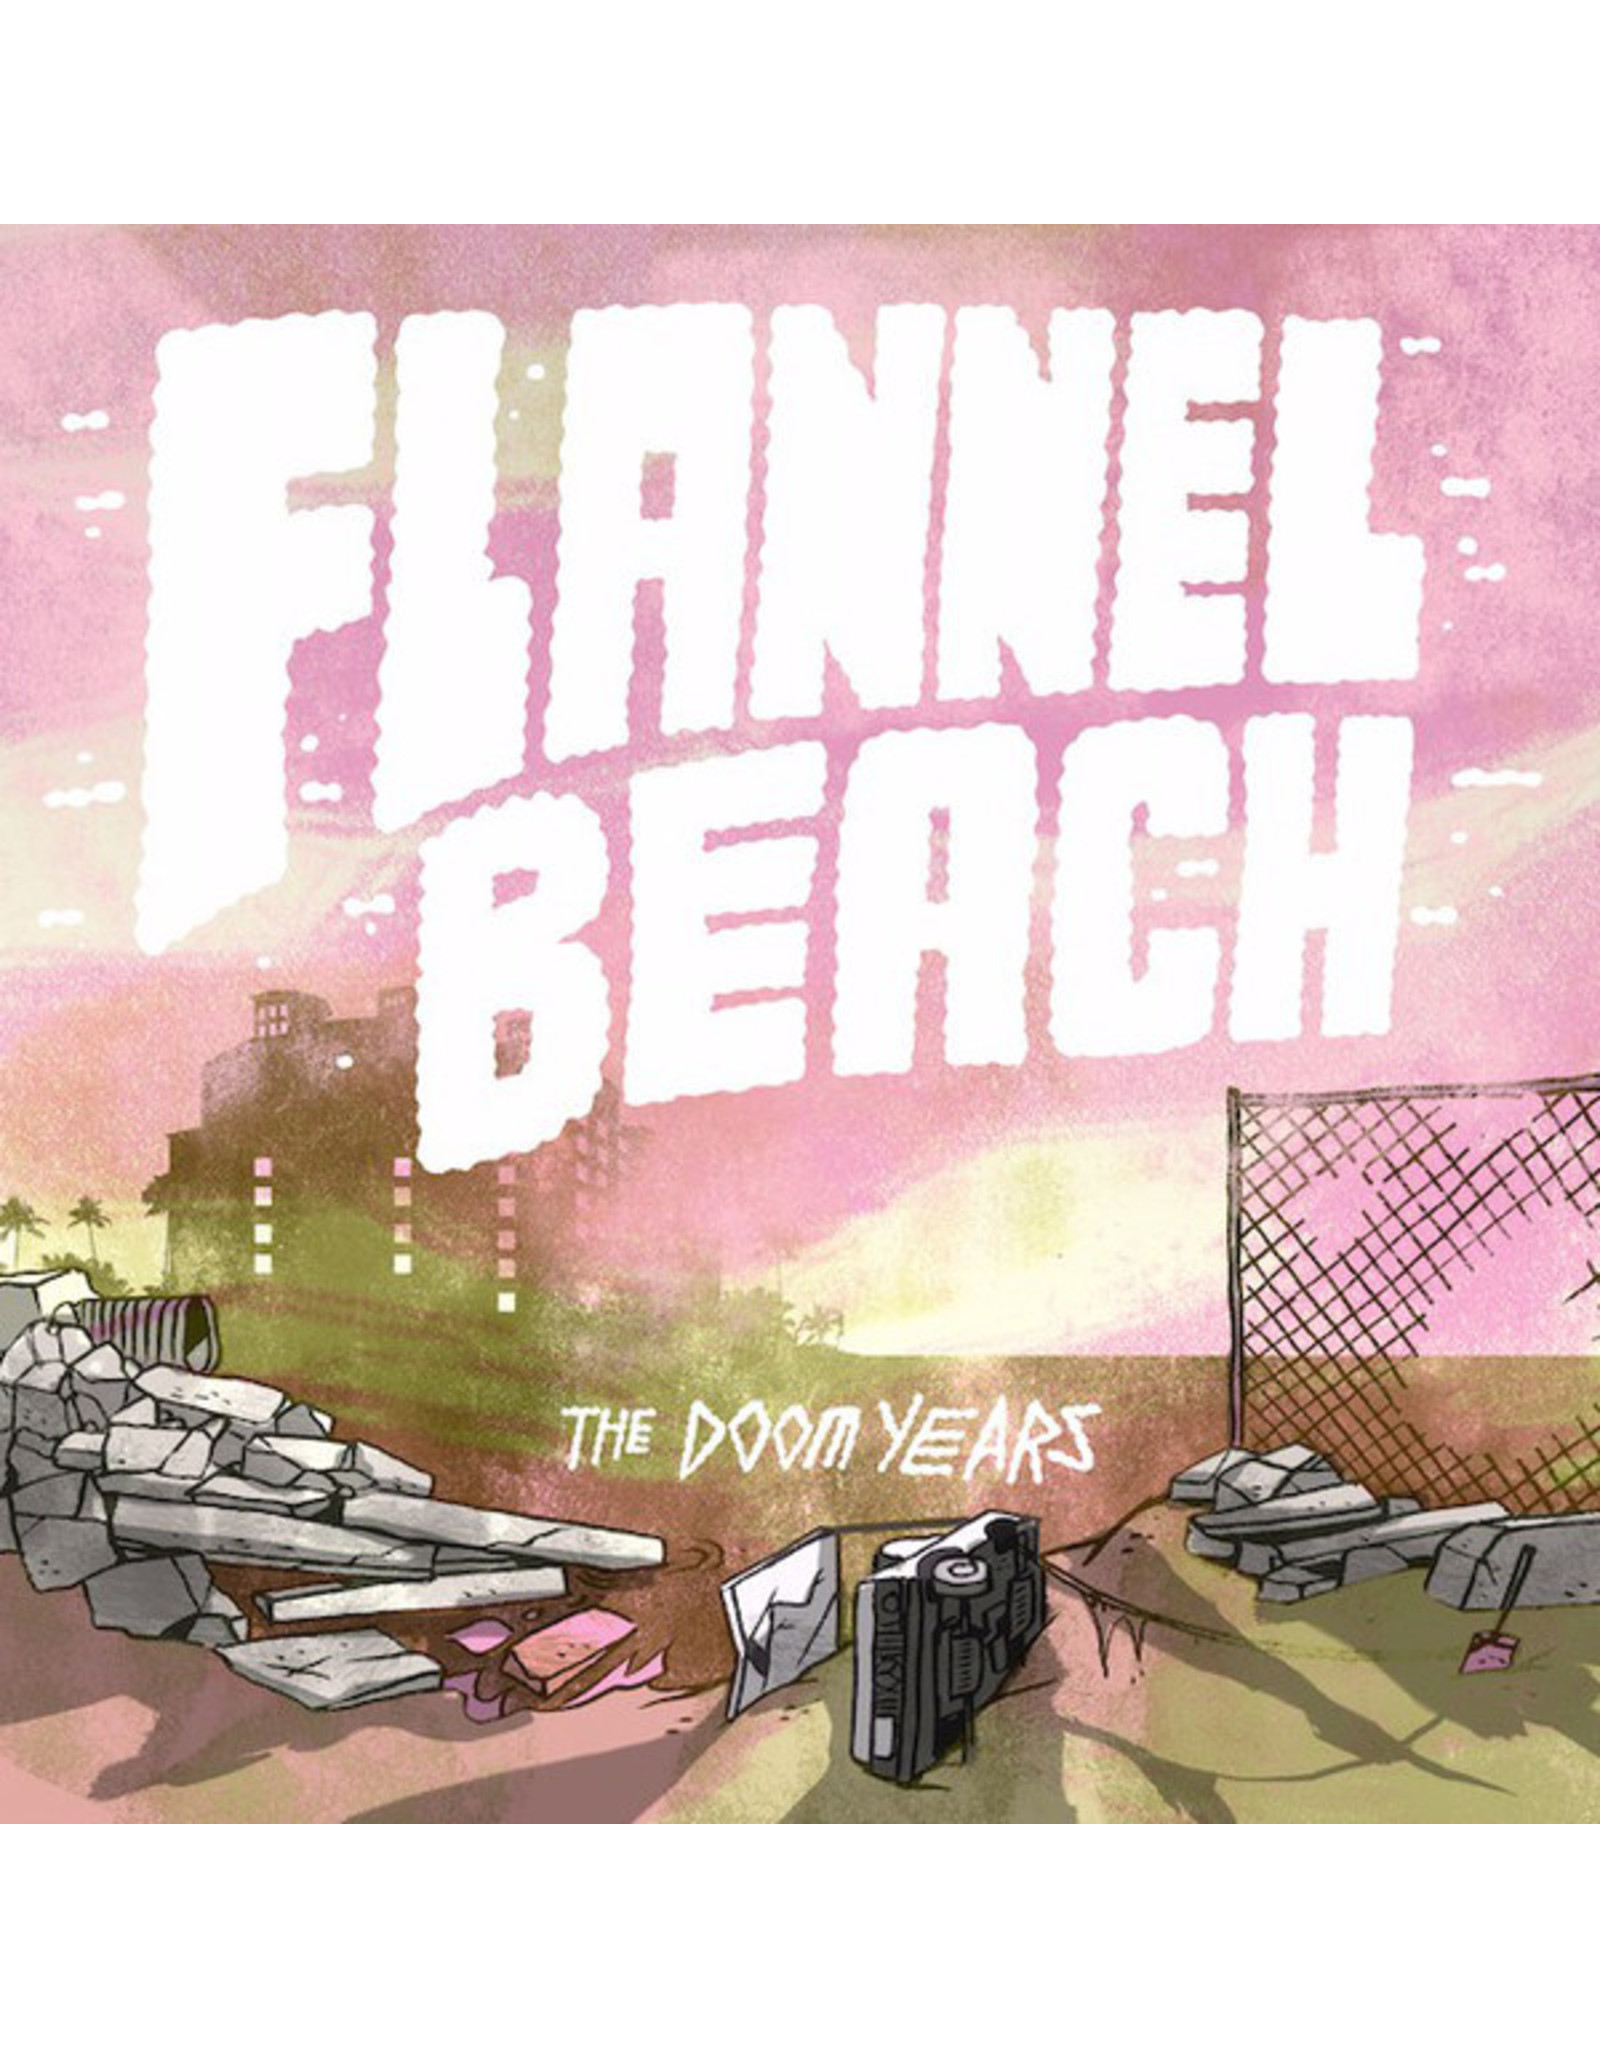 New Vinyl Various - Flannel Beach: The Doom Years LP